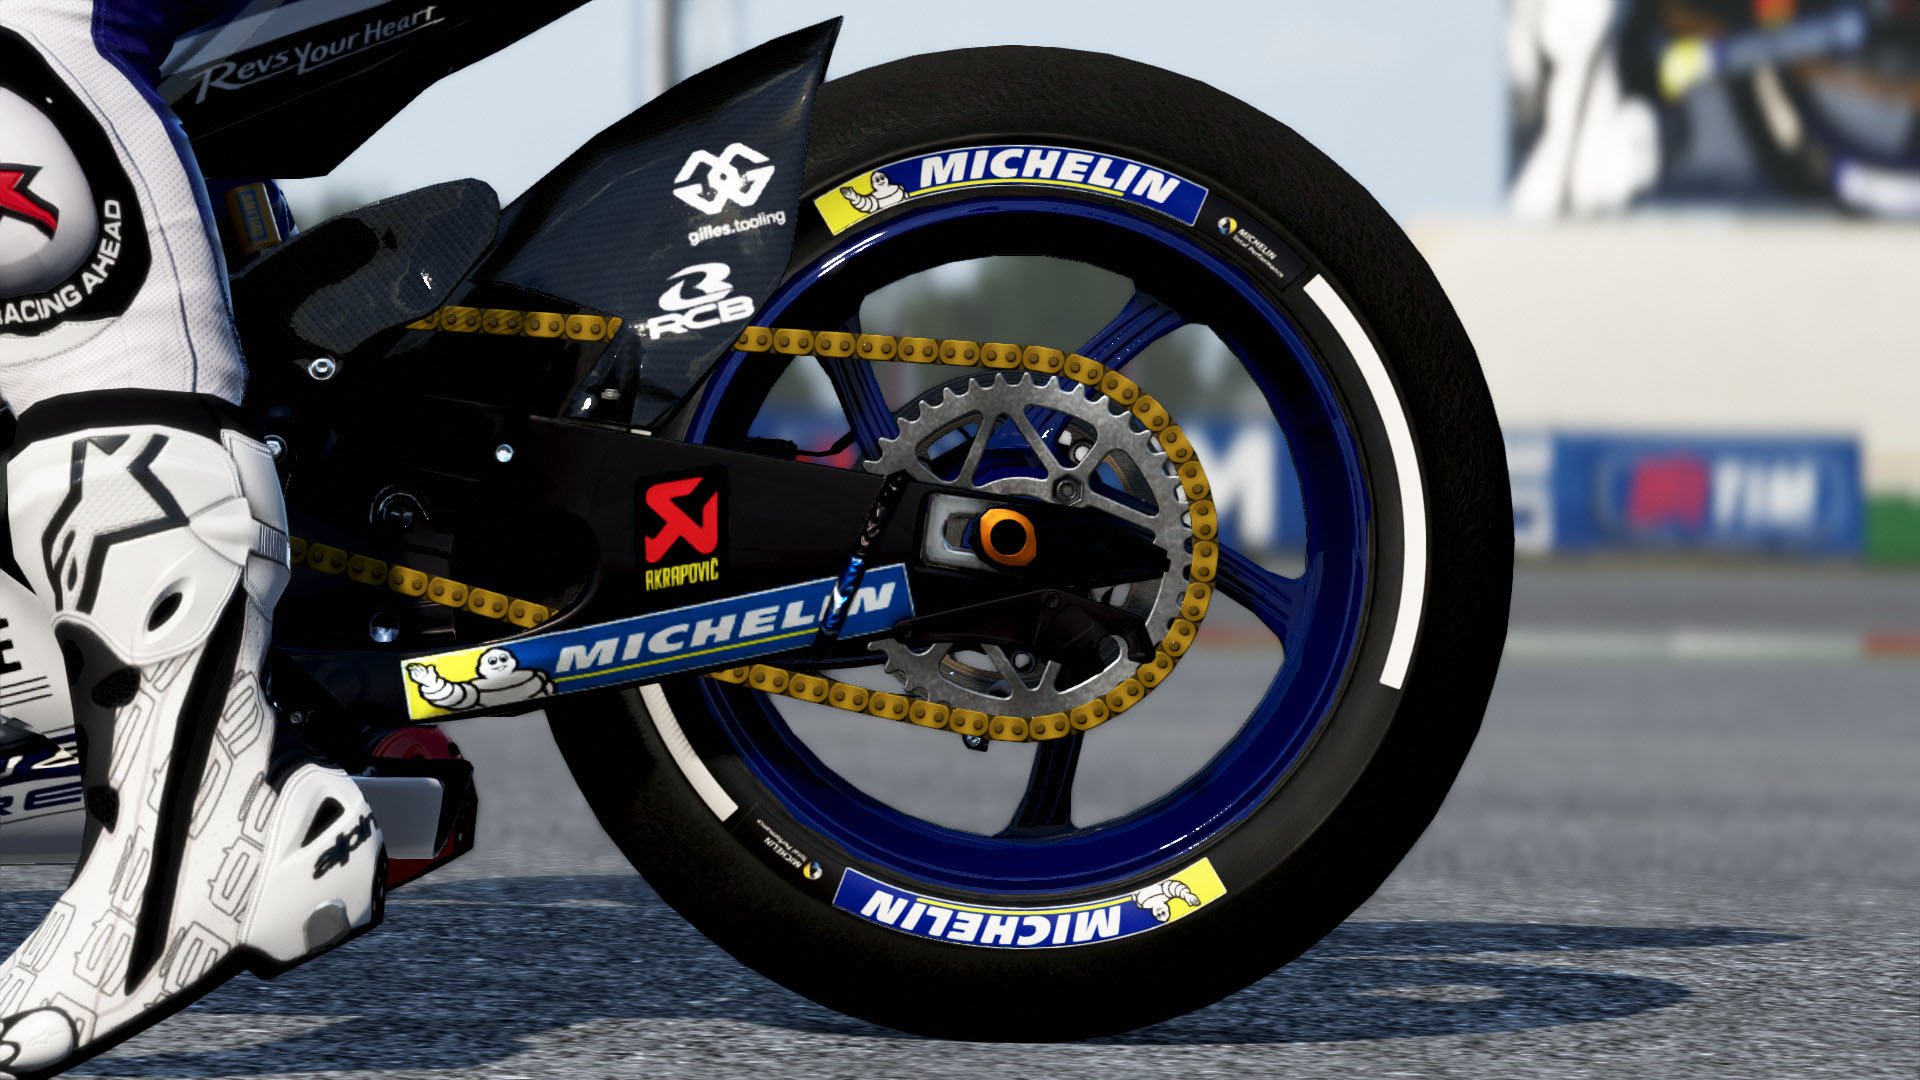 ZB's 2016 Michelin Tyres | RaceDepartment - Latest Formula 1, Motorsport, and Sim Racing News